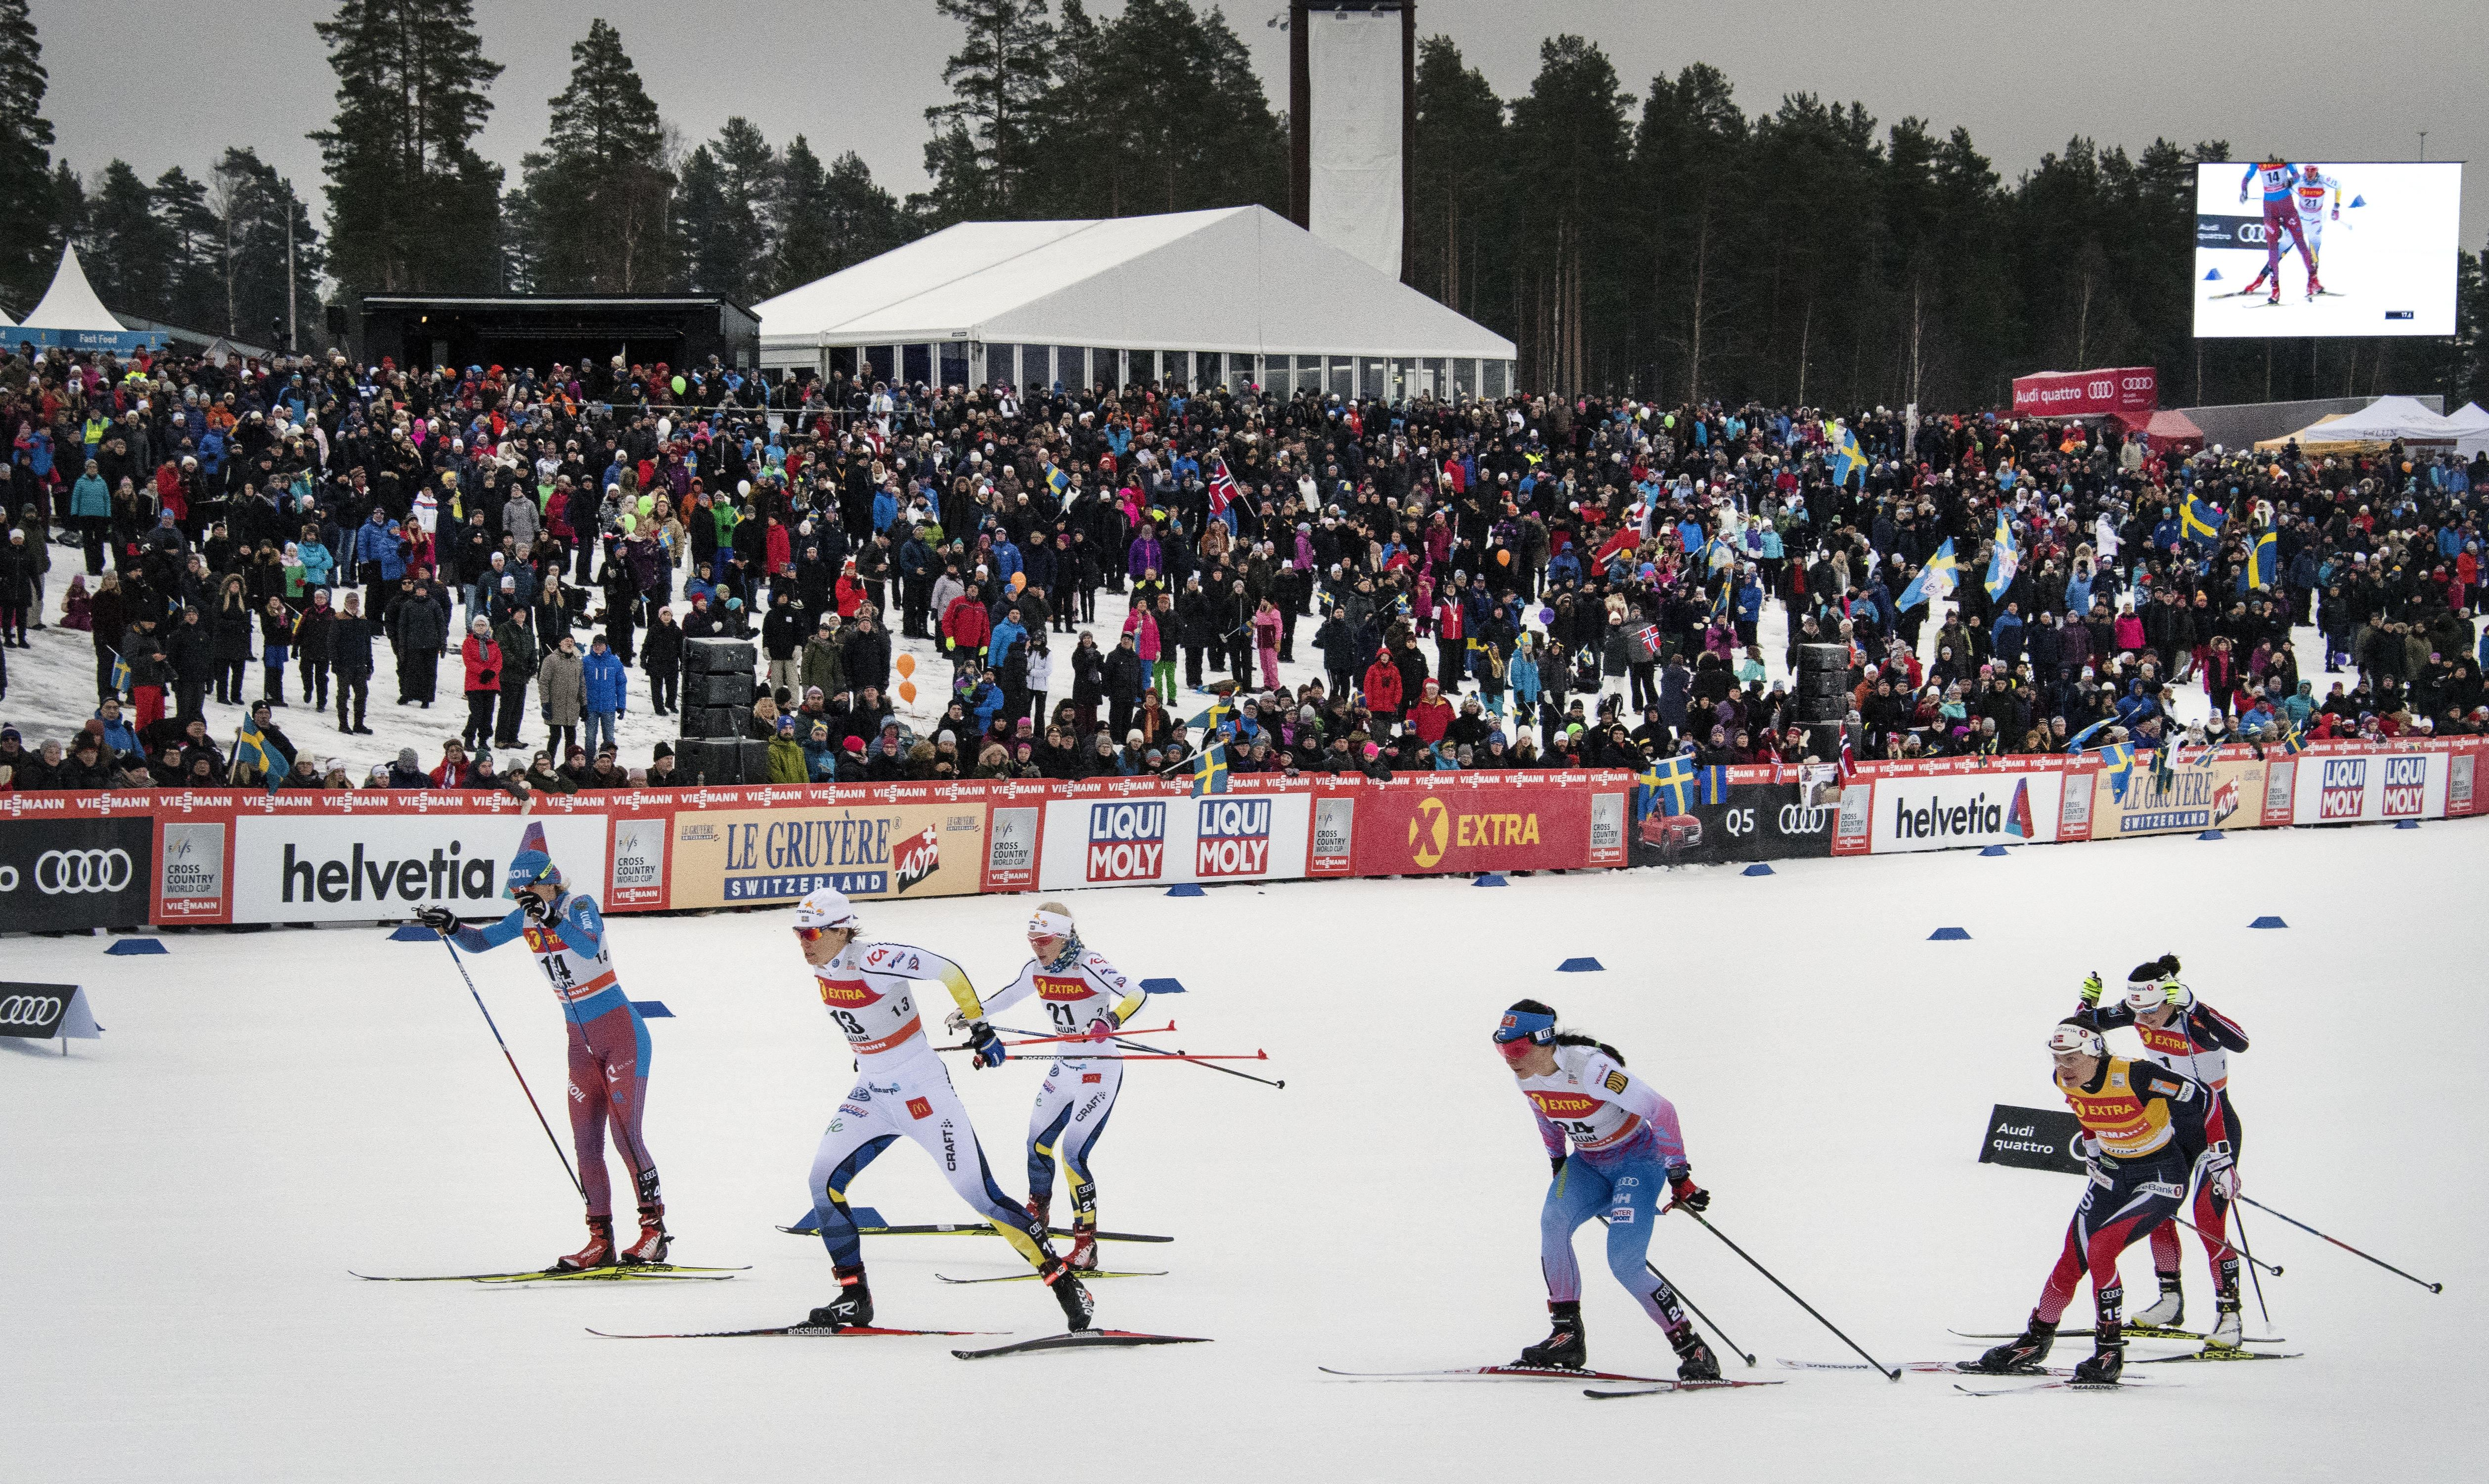 FIS Cross-Country World Cup Svenska Skidspelen